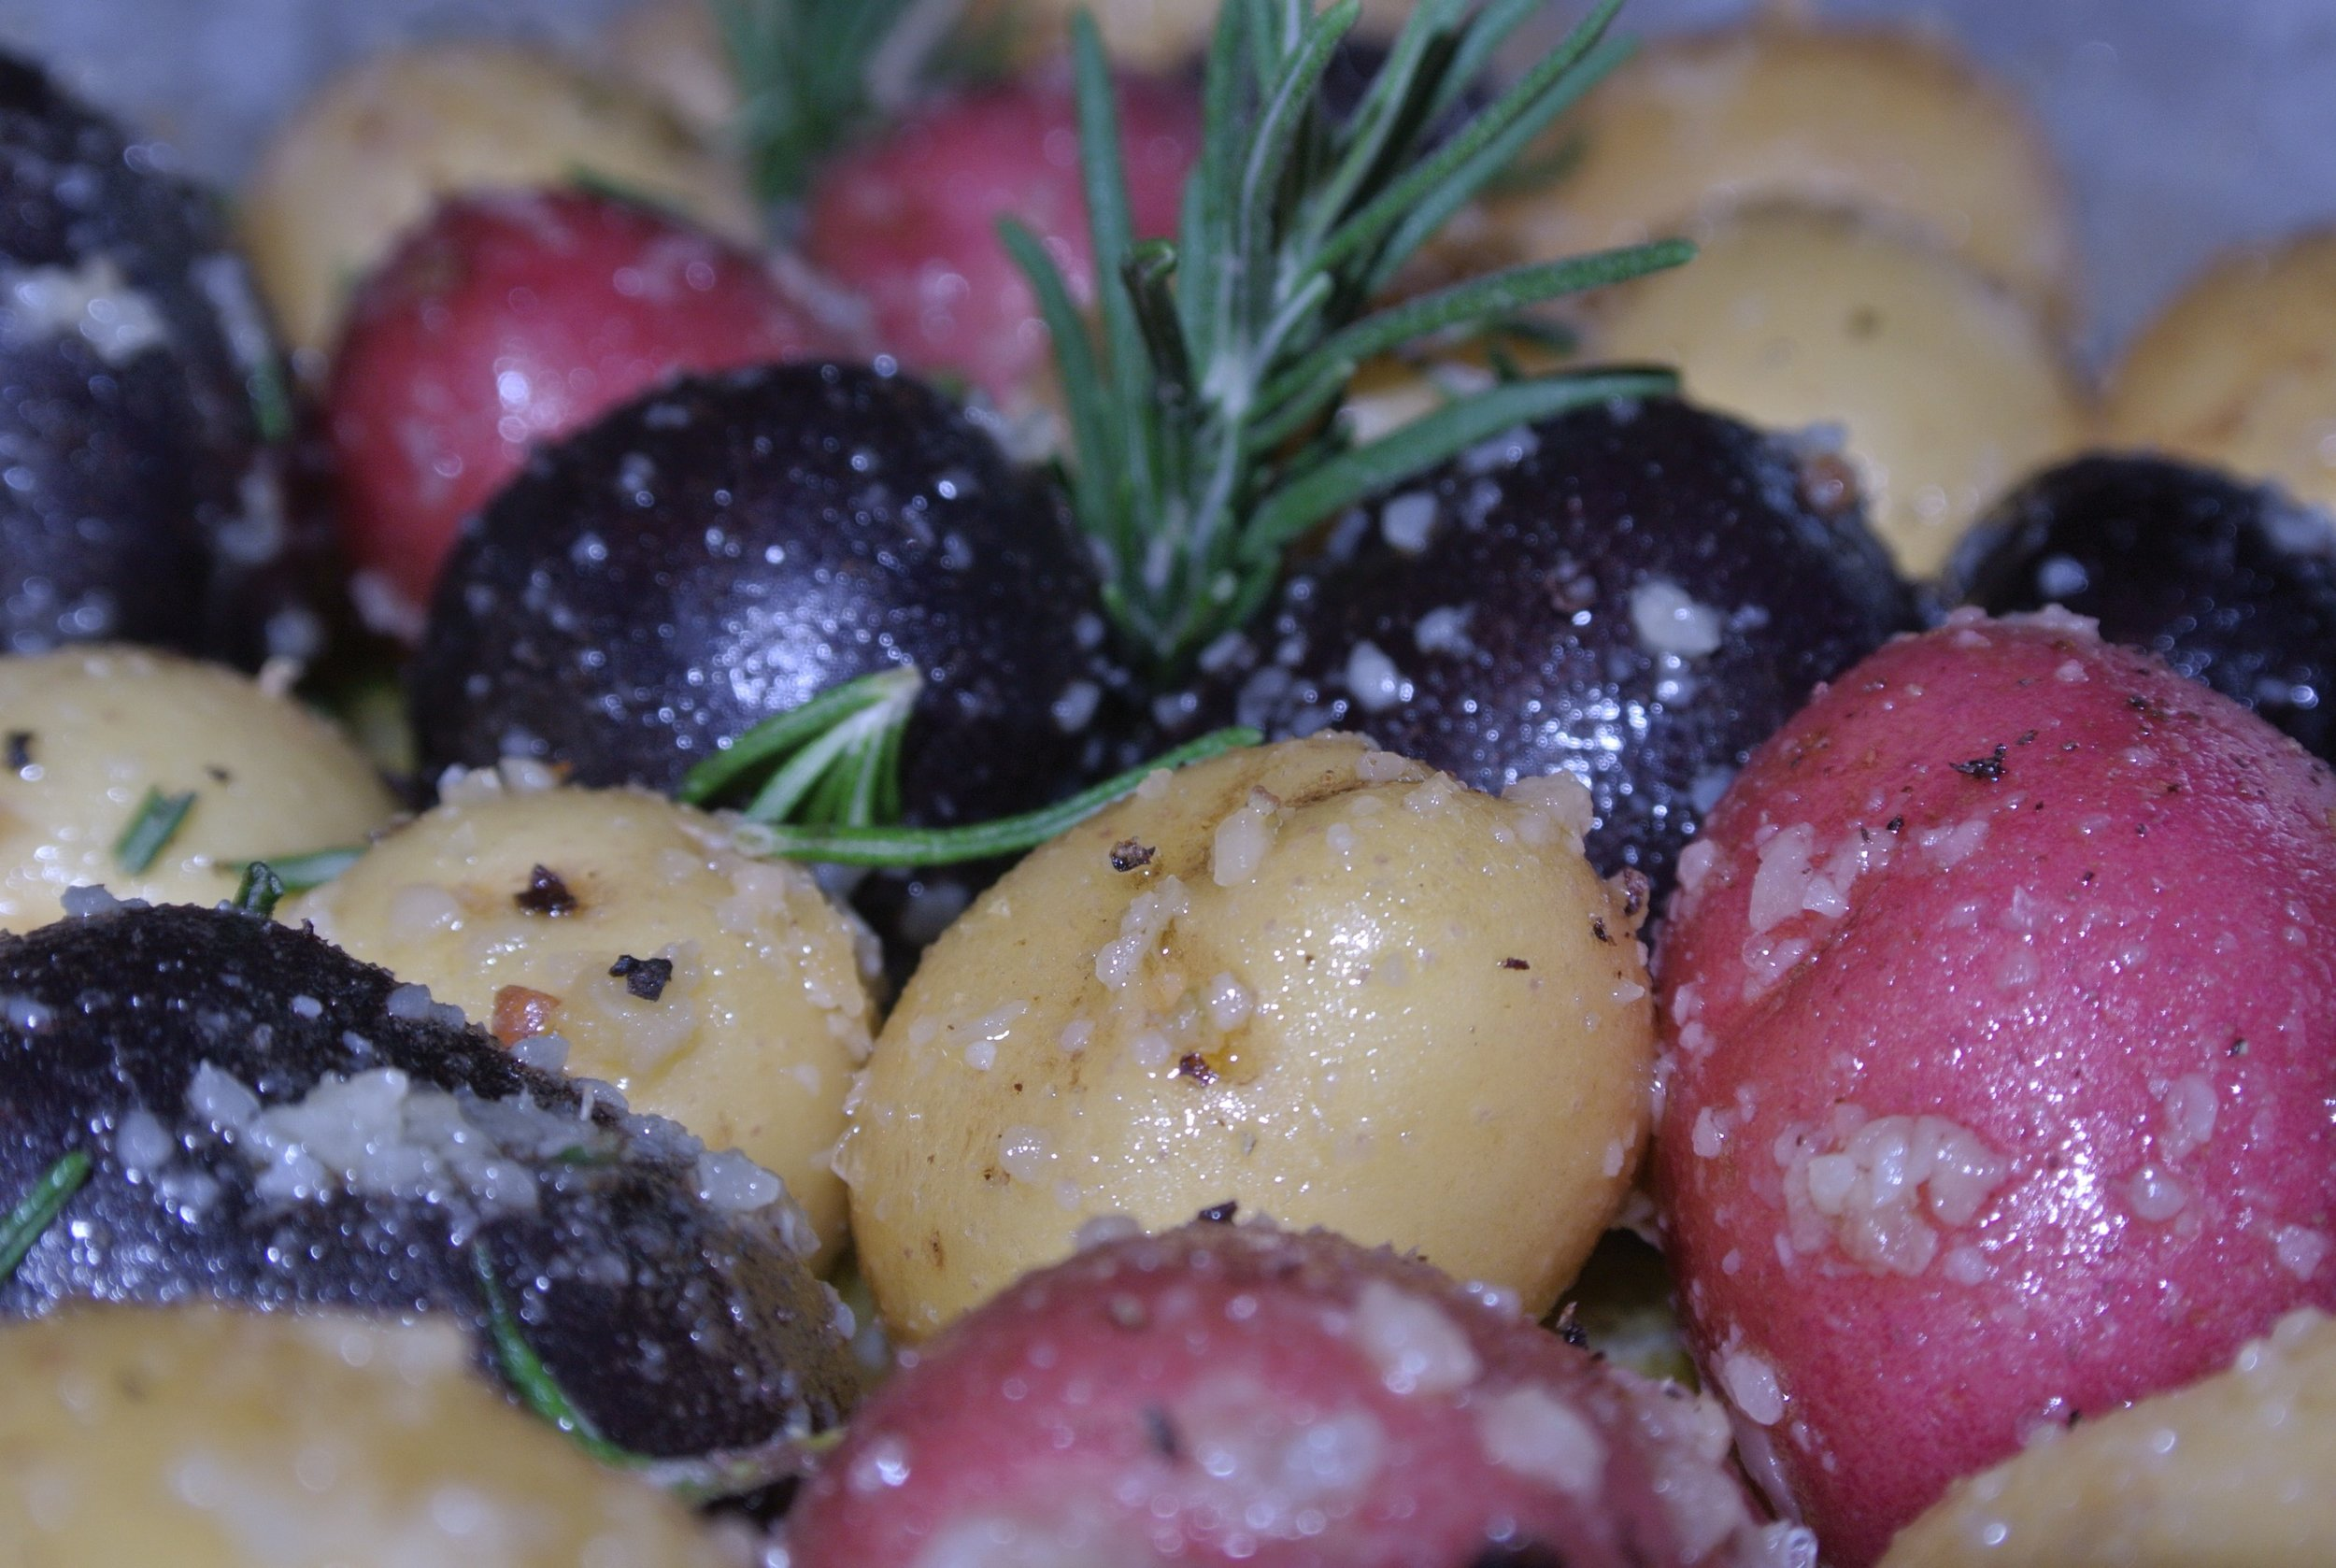 Side Dishes - Featured image: Roasted rosemary and garlic baby potatoes